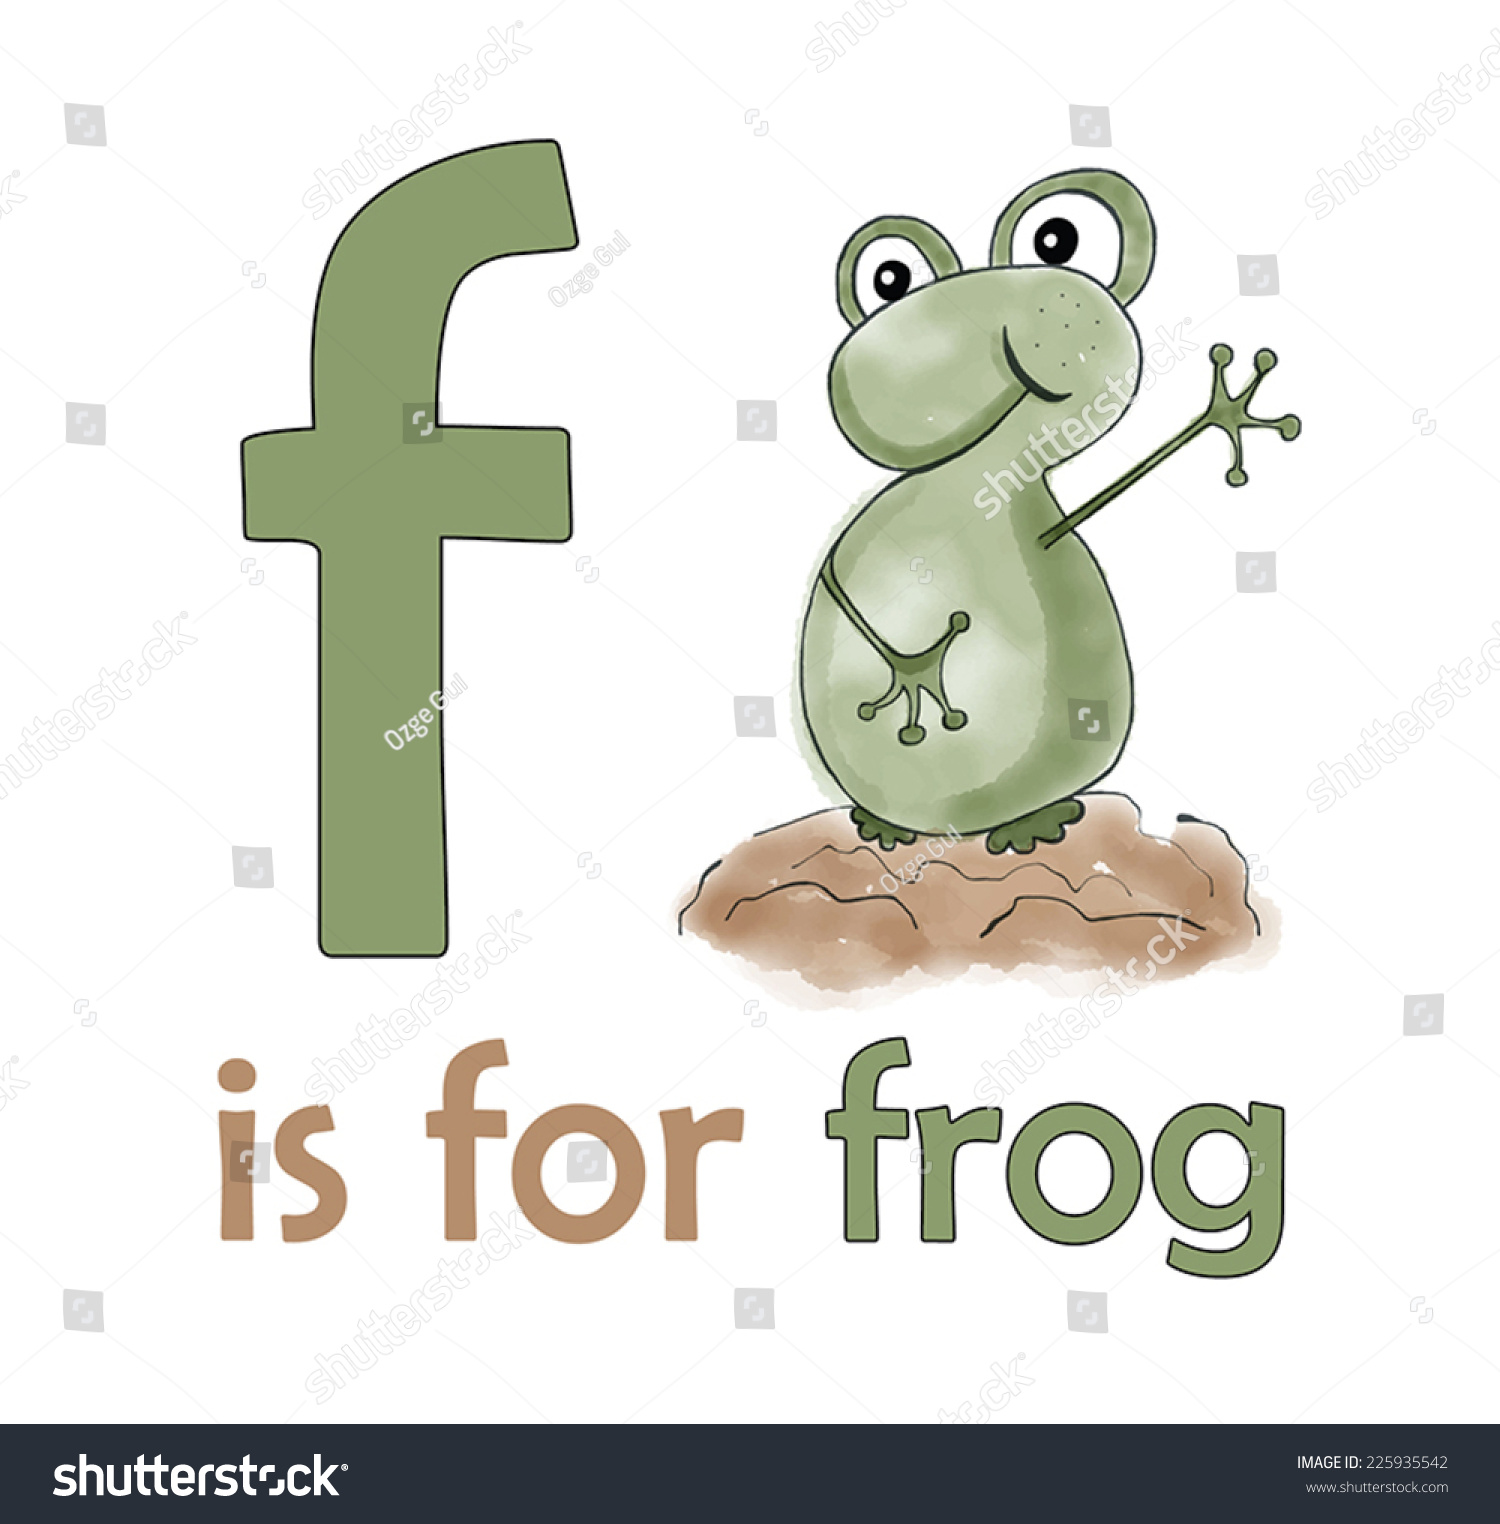 f is for frog children alphabet for kids educational books frog illustration for letter